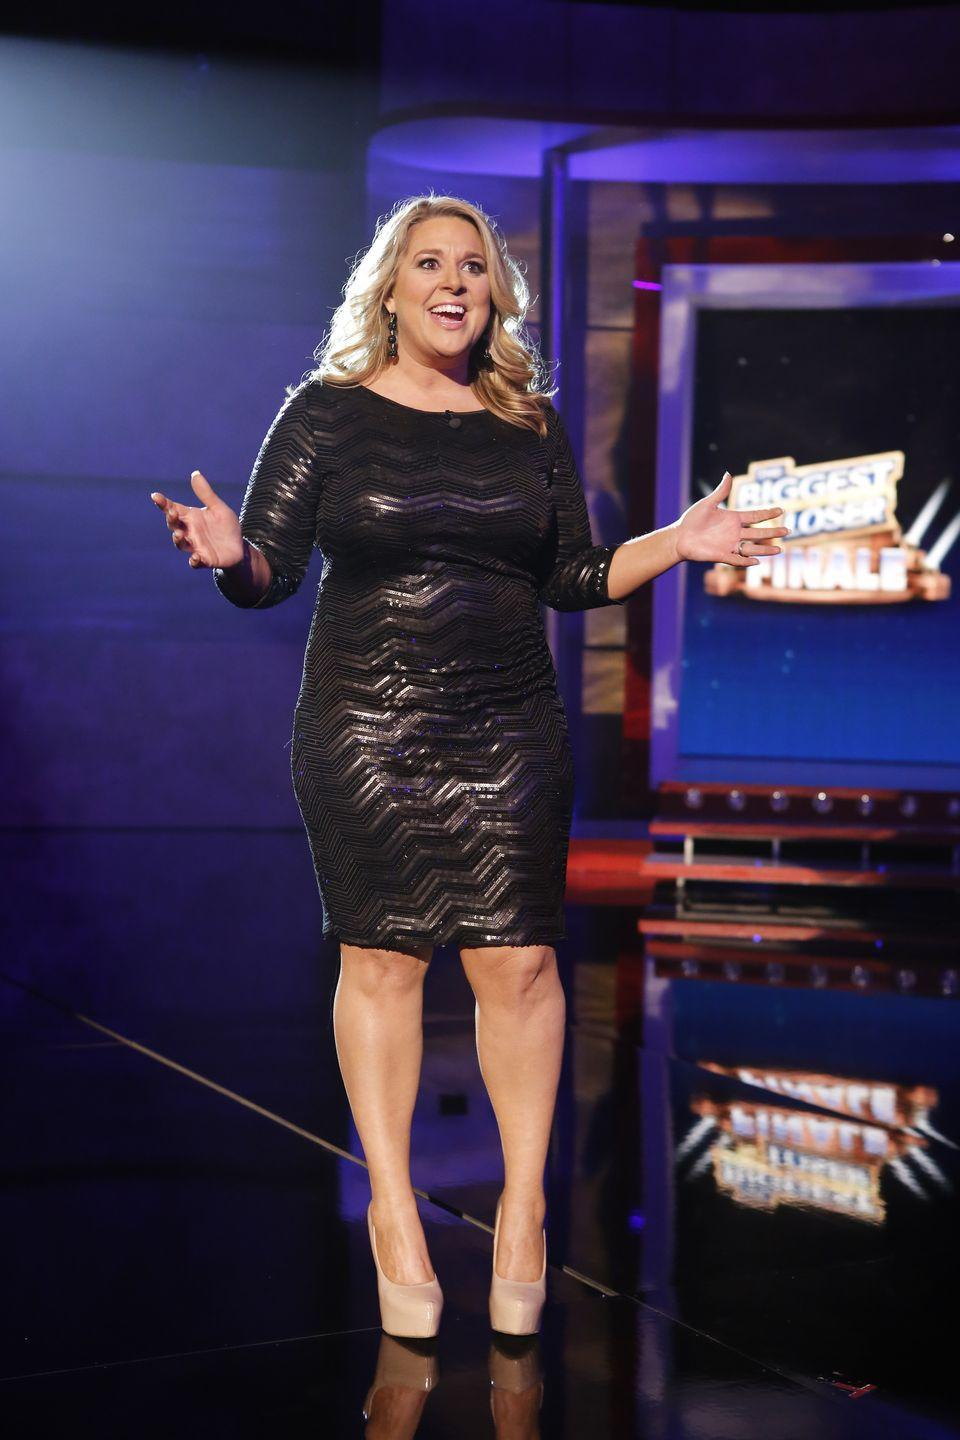 <p>Abby ended up losing 100 pounds, which was 40 percent of her body weight. She's now a motivational speaker.</p>